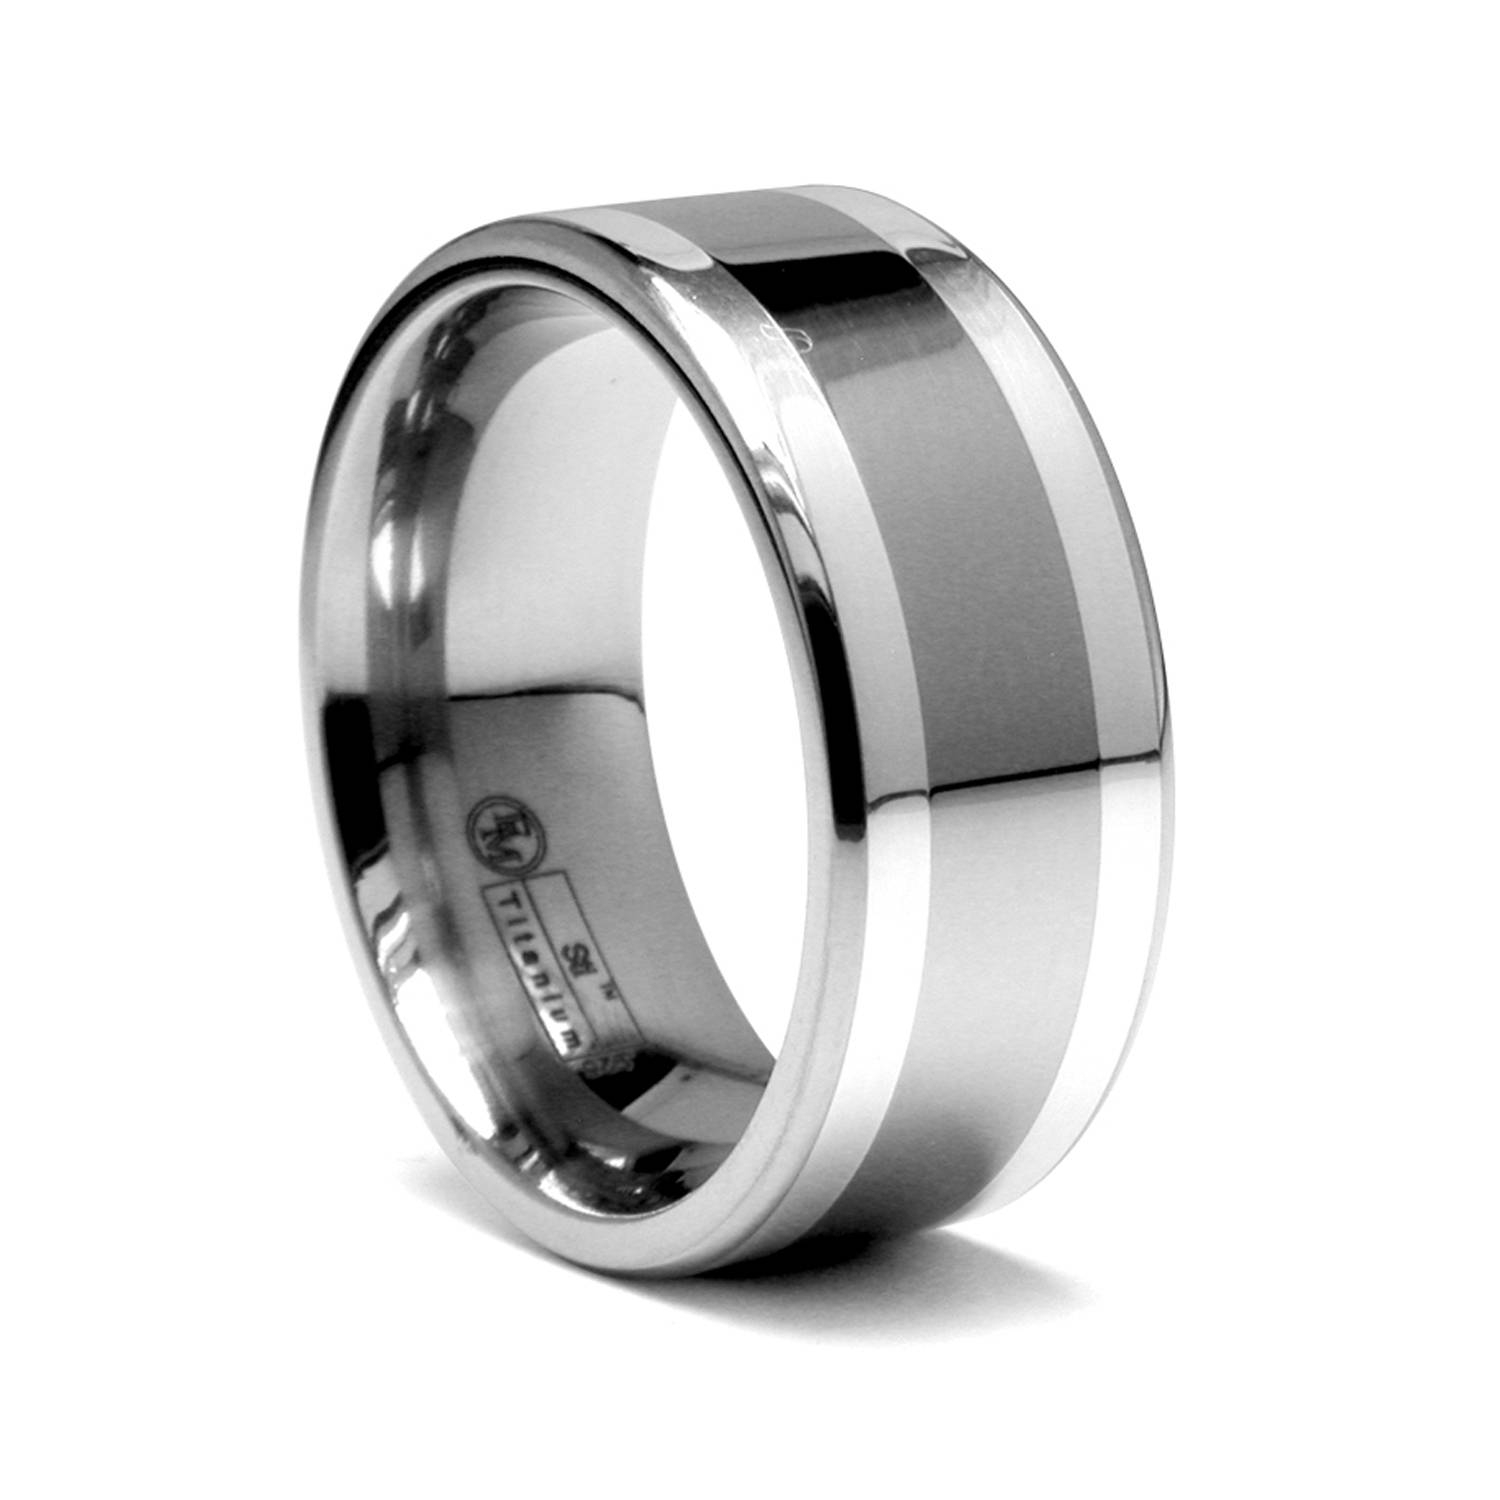 Titanium Men's Ring With Silver Inlays | Alpha Rings Inside Titanium Mens Wedding Bands (View 13 of 15)